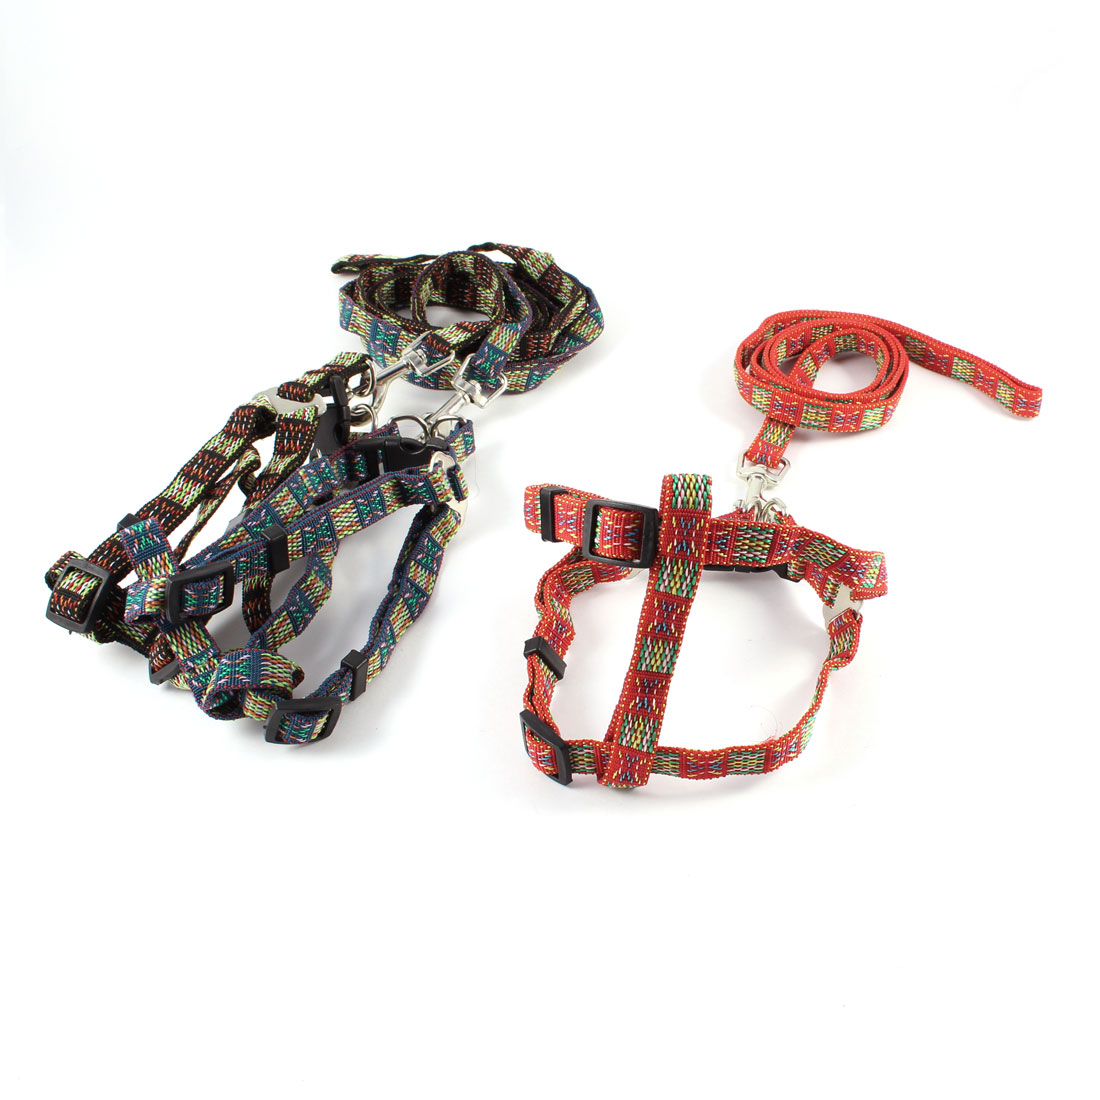 3 Pcs Multicolored Adjustable Dog Harness Leash Set w Swivel Clasp Hook